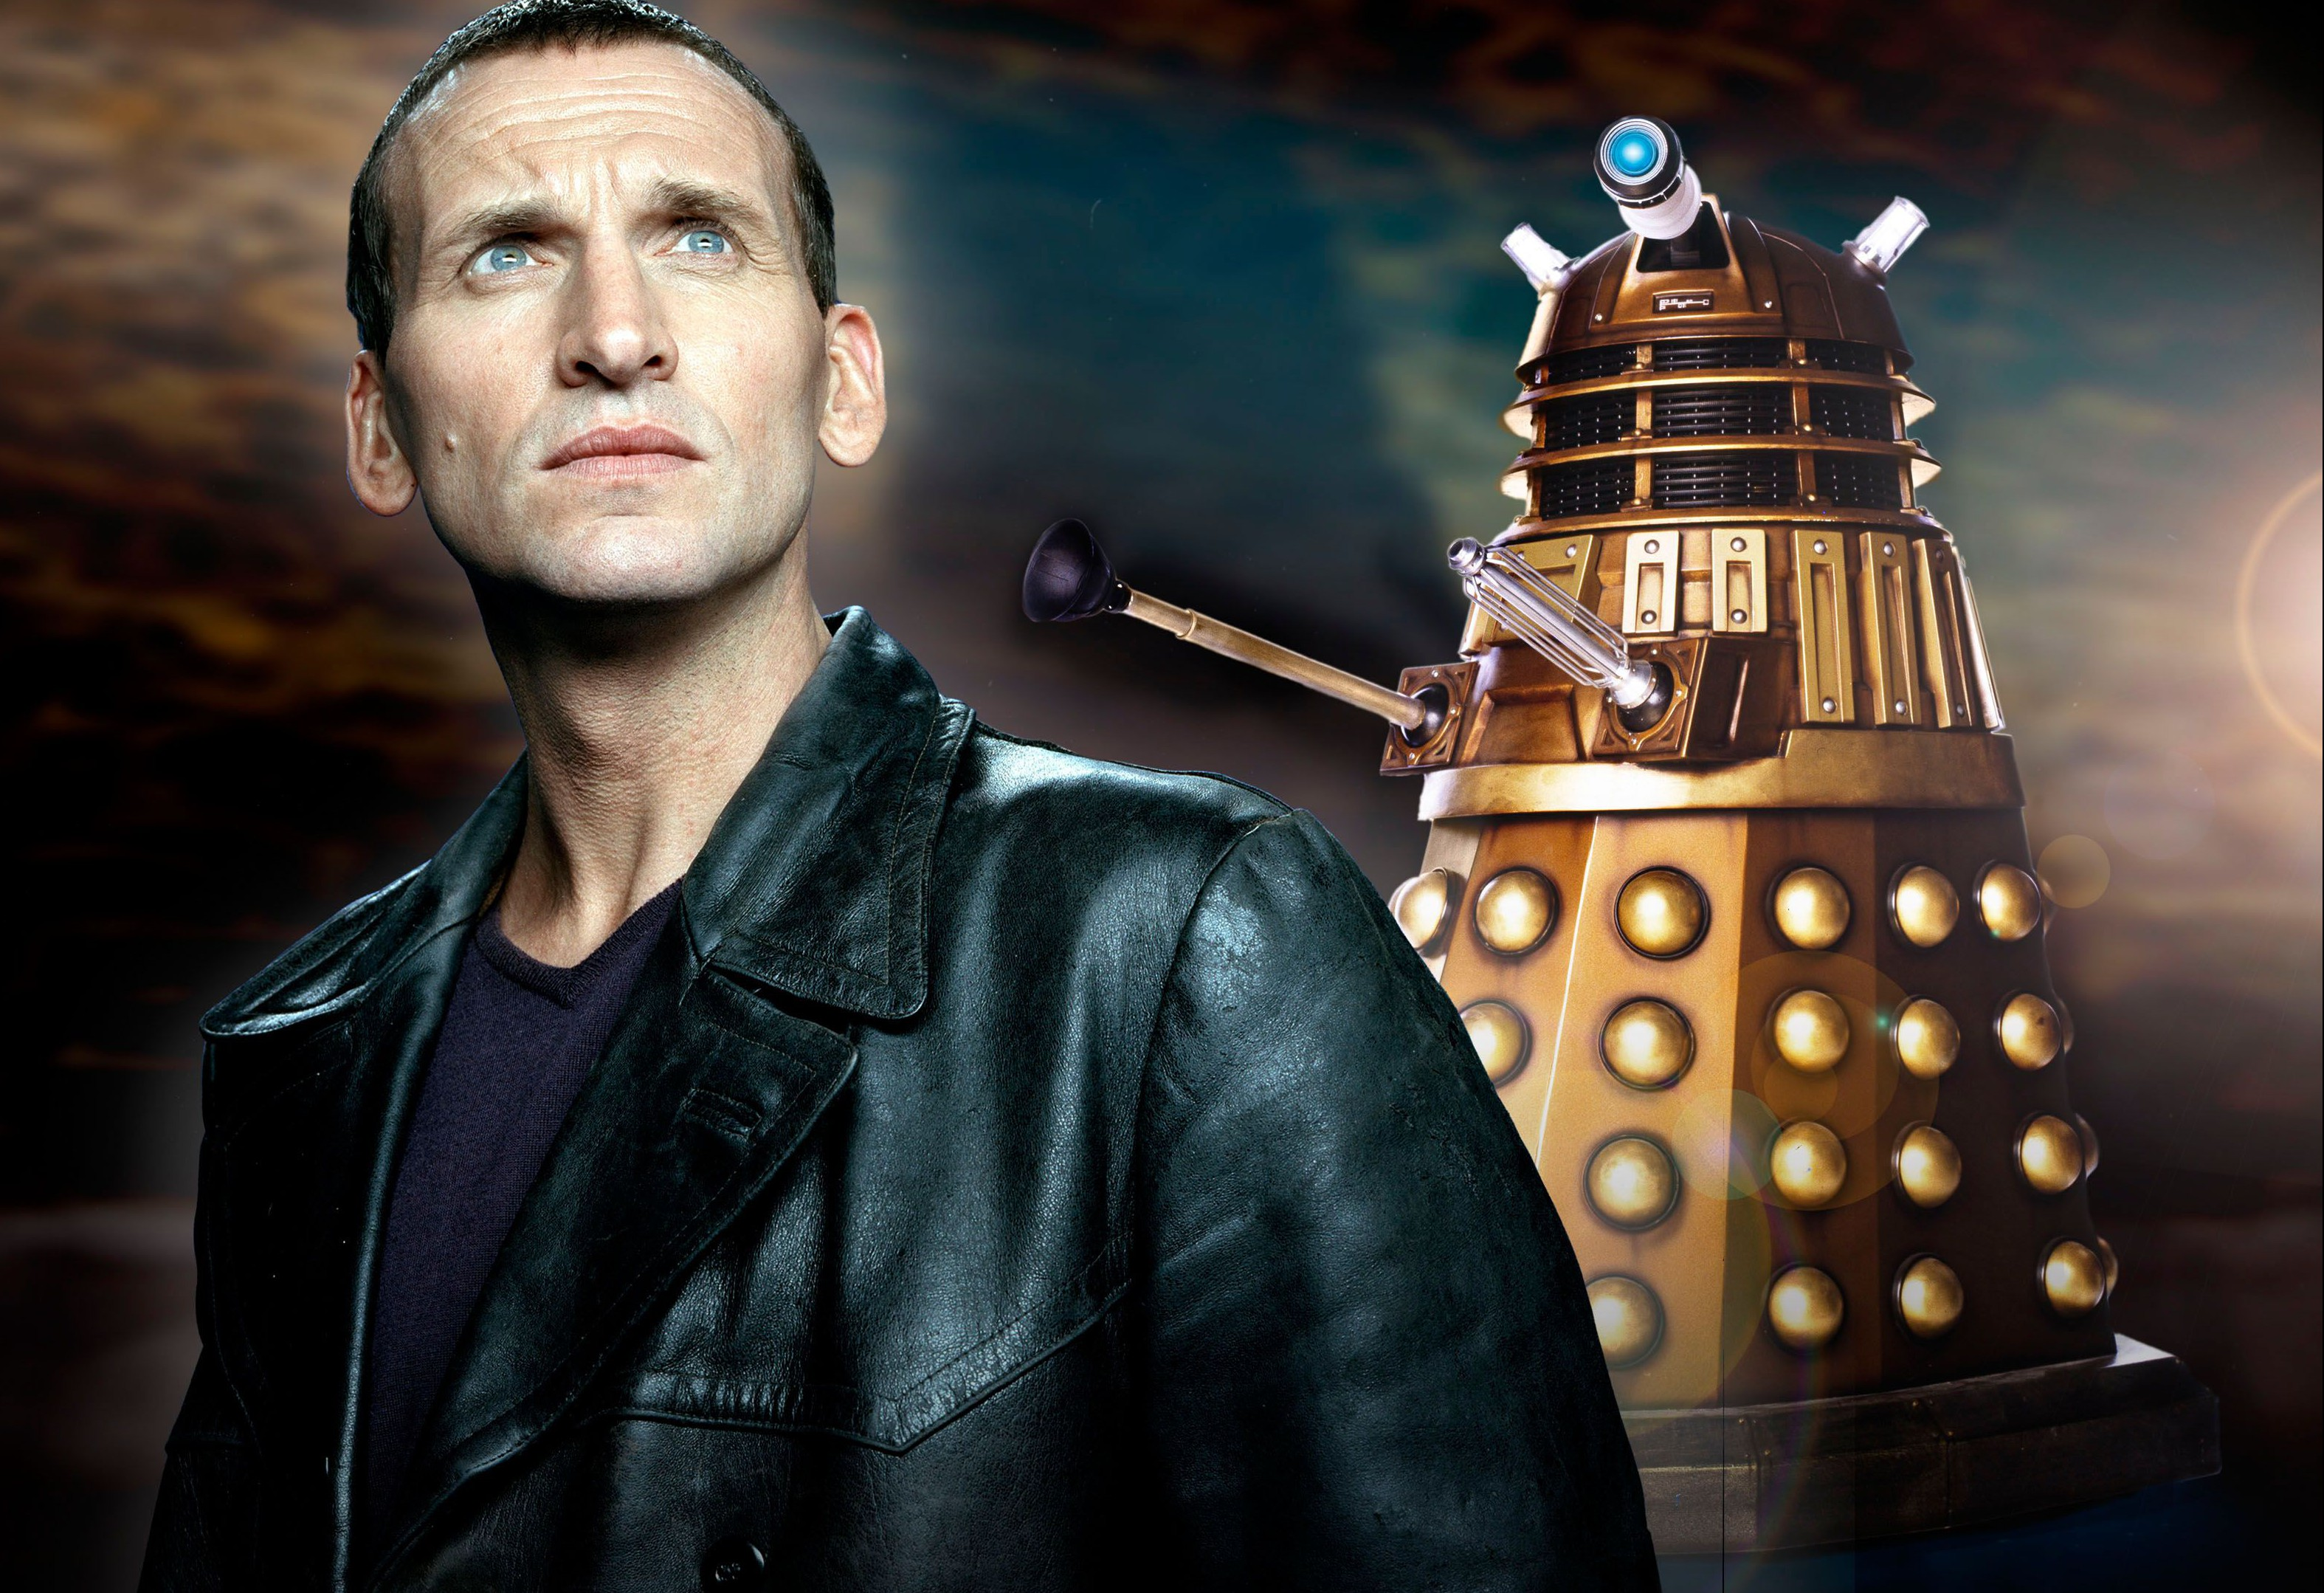 Doctor Who 10th anniversary: 10 must watch new Who episodes – Dalek